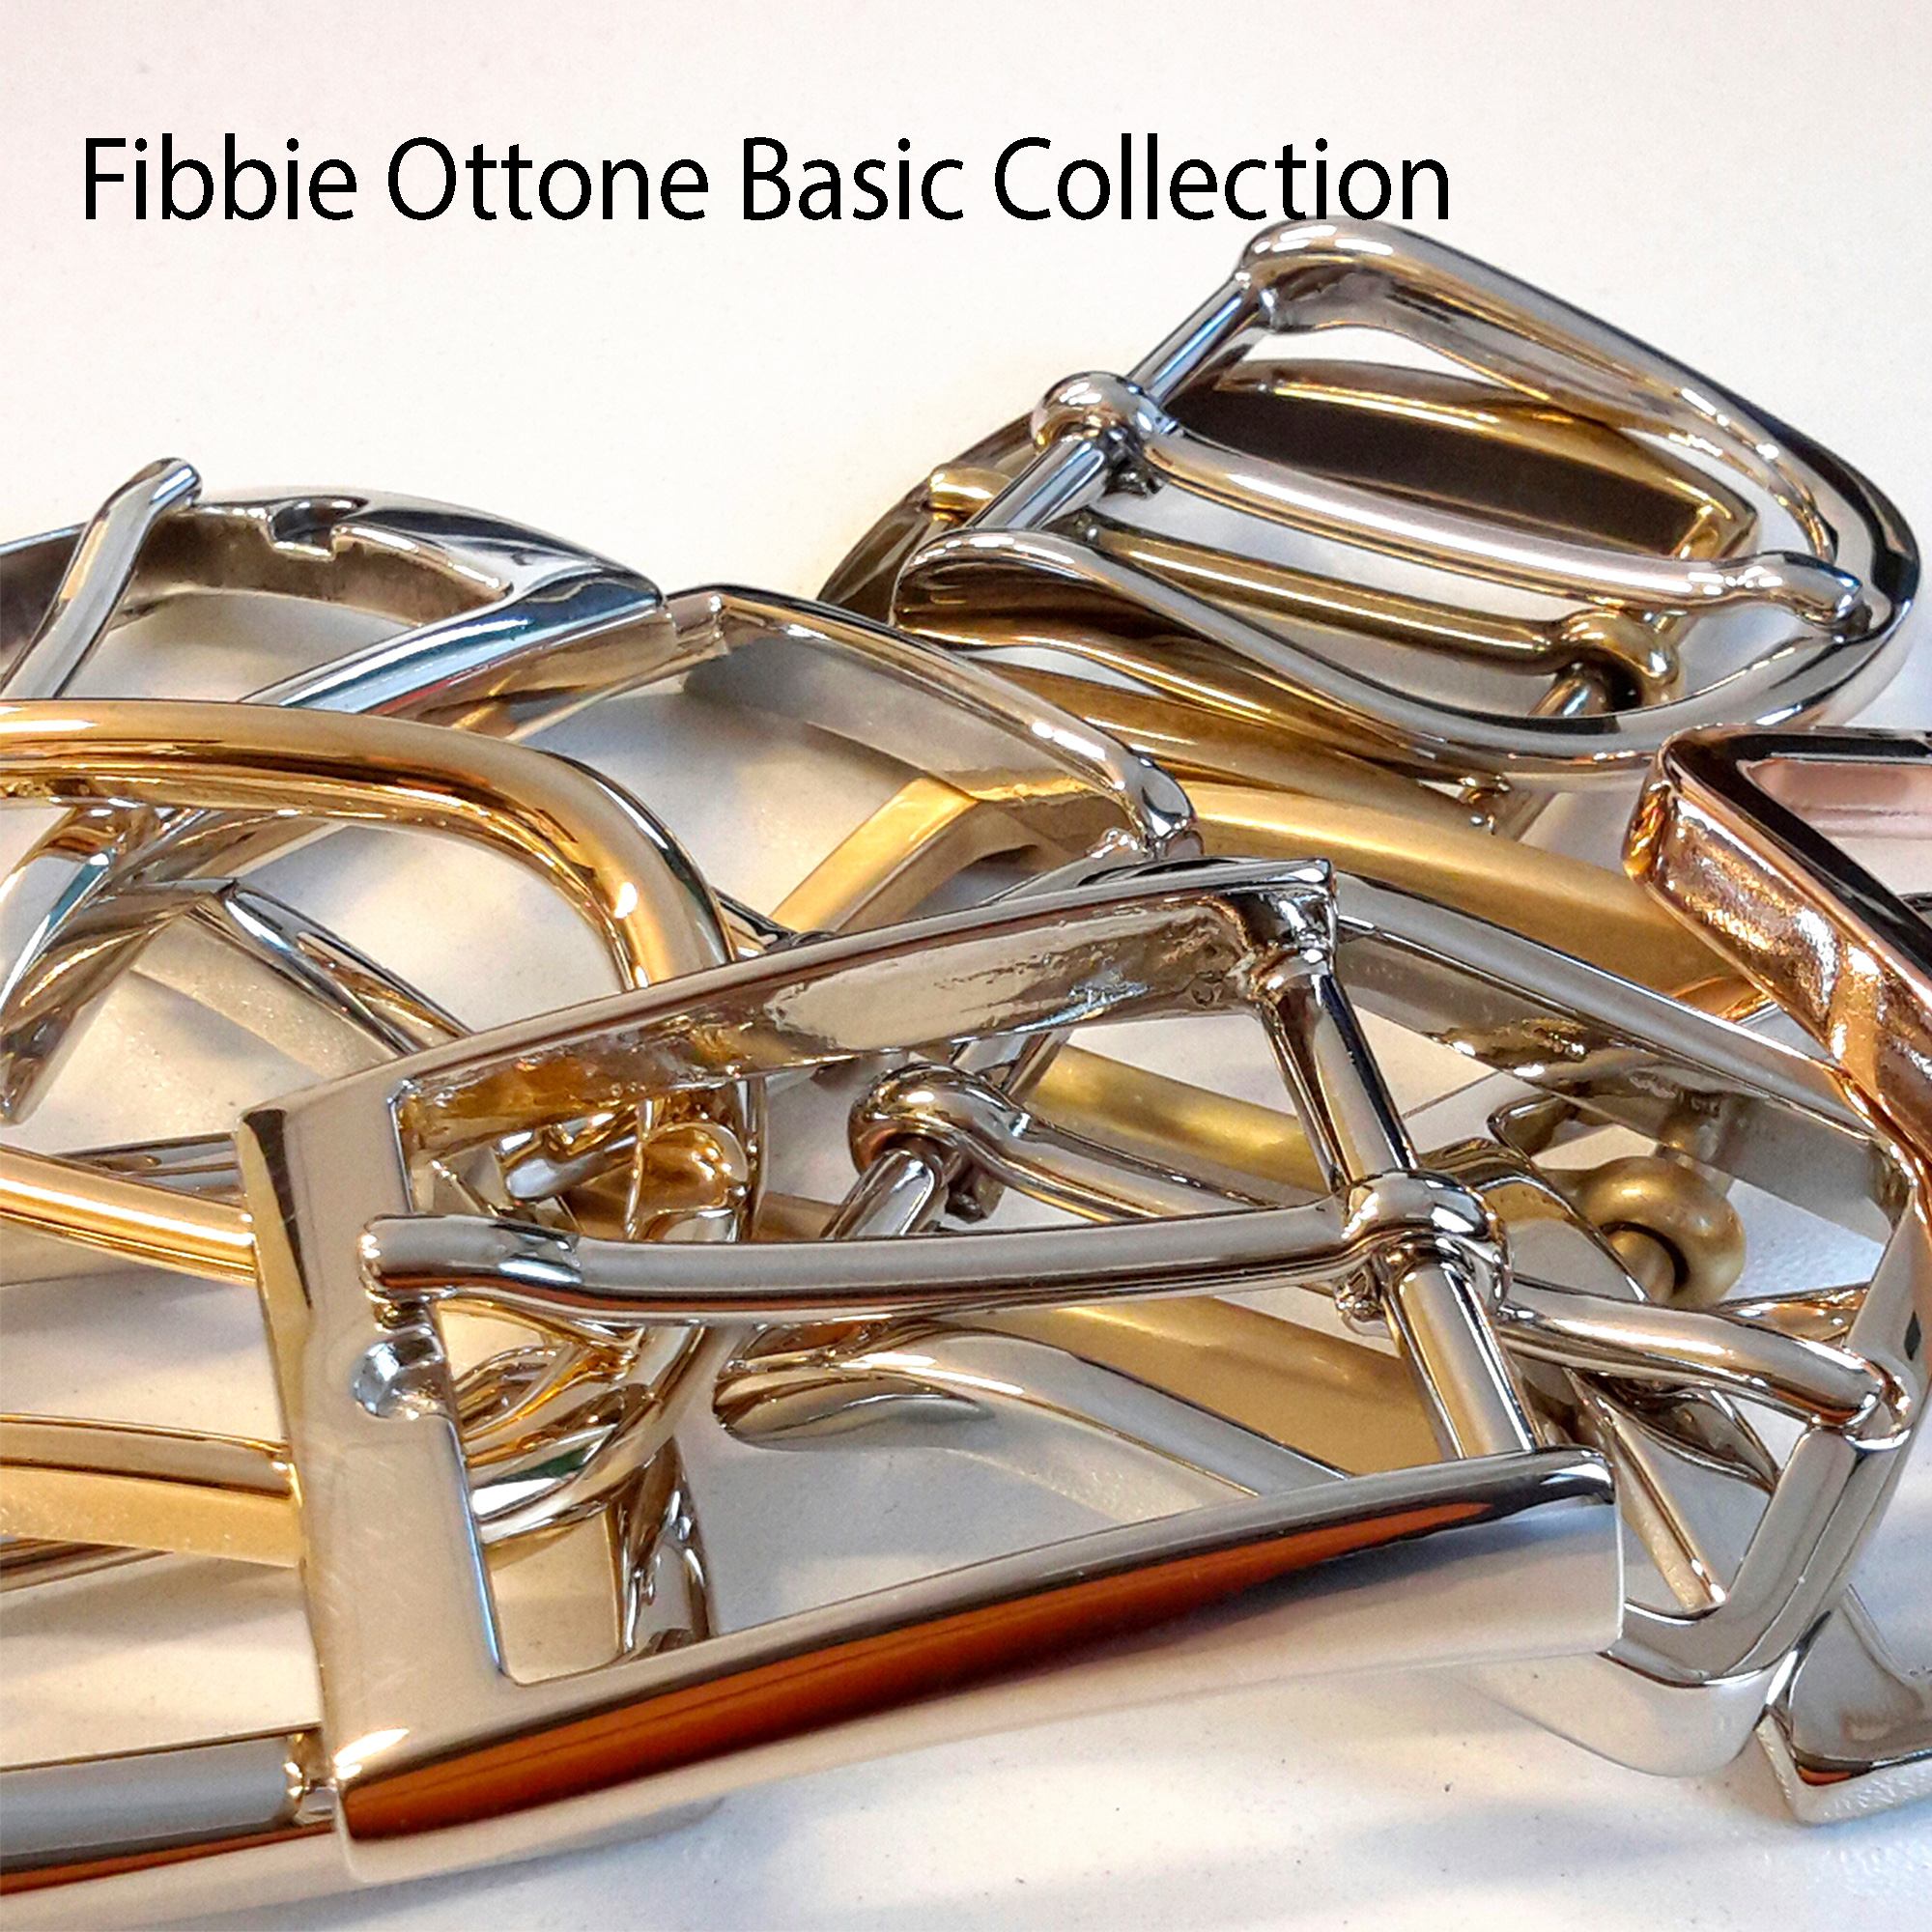 Fibbie Ottone Basic Collection - Guimer Srl